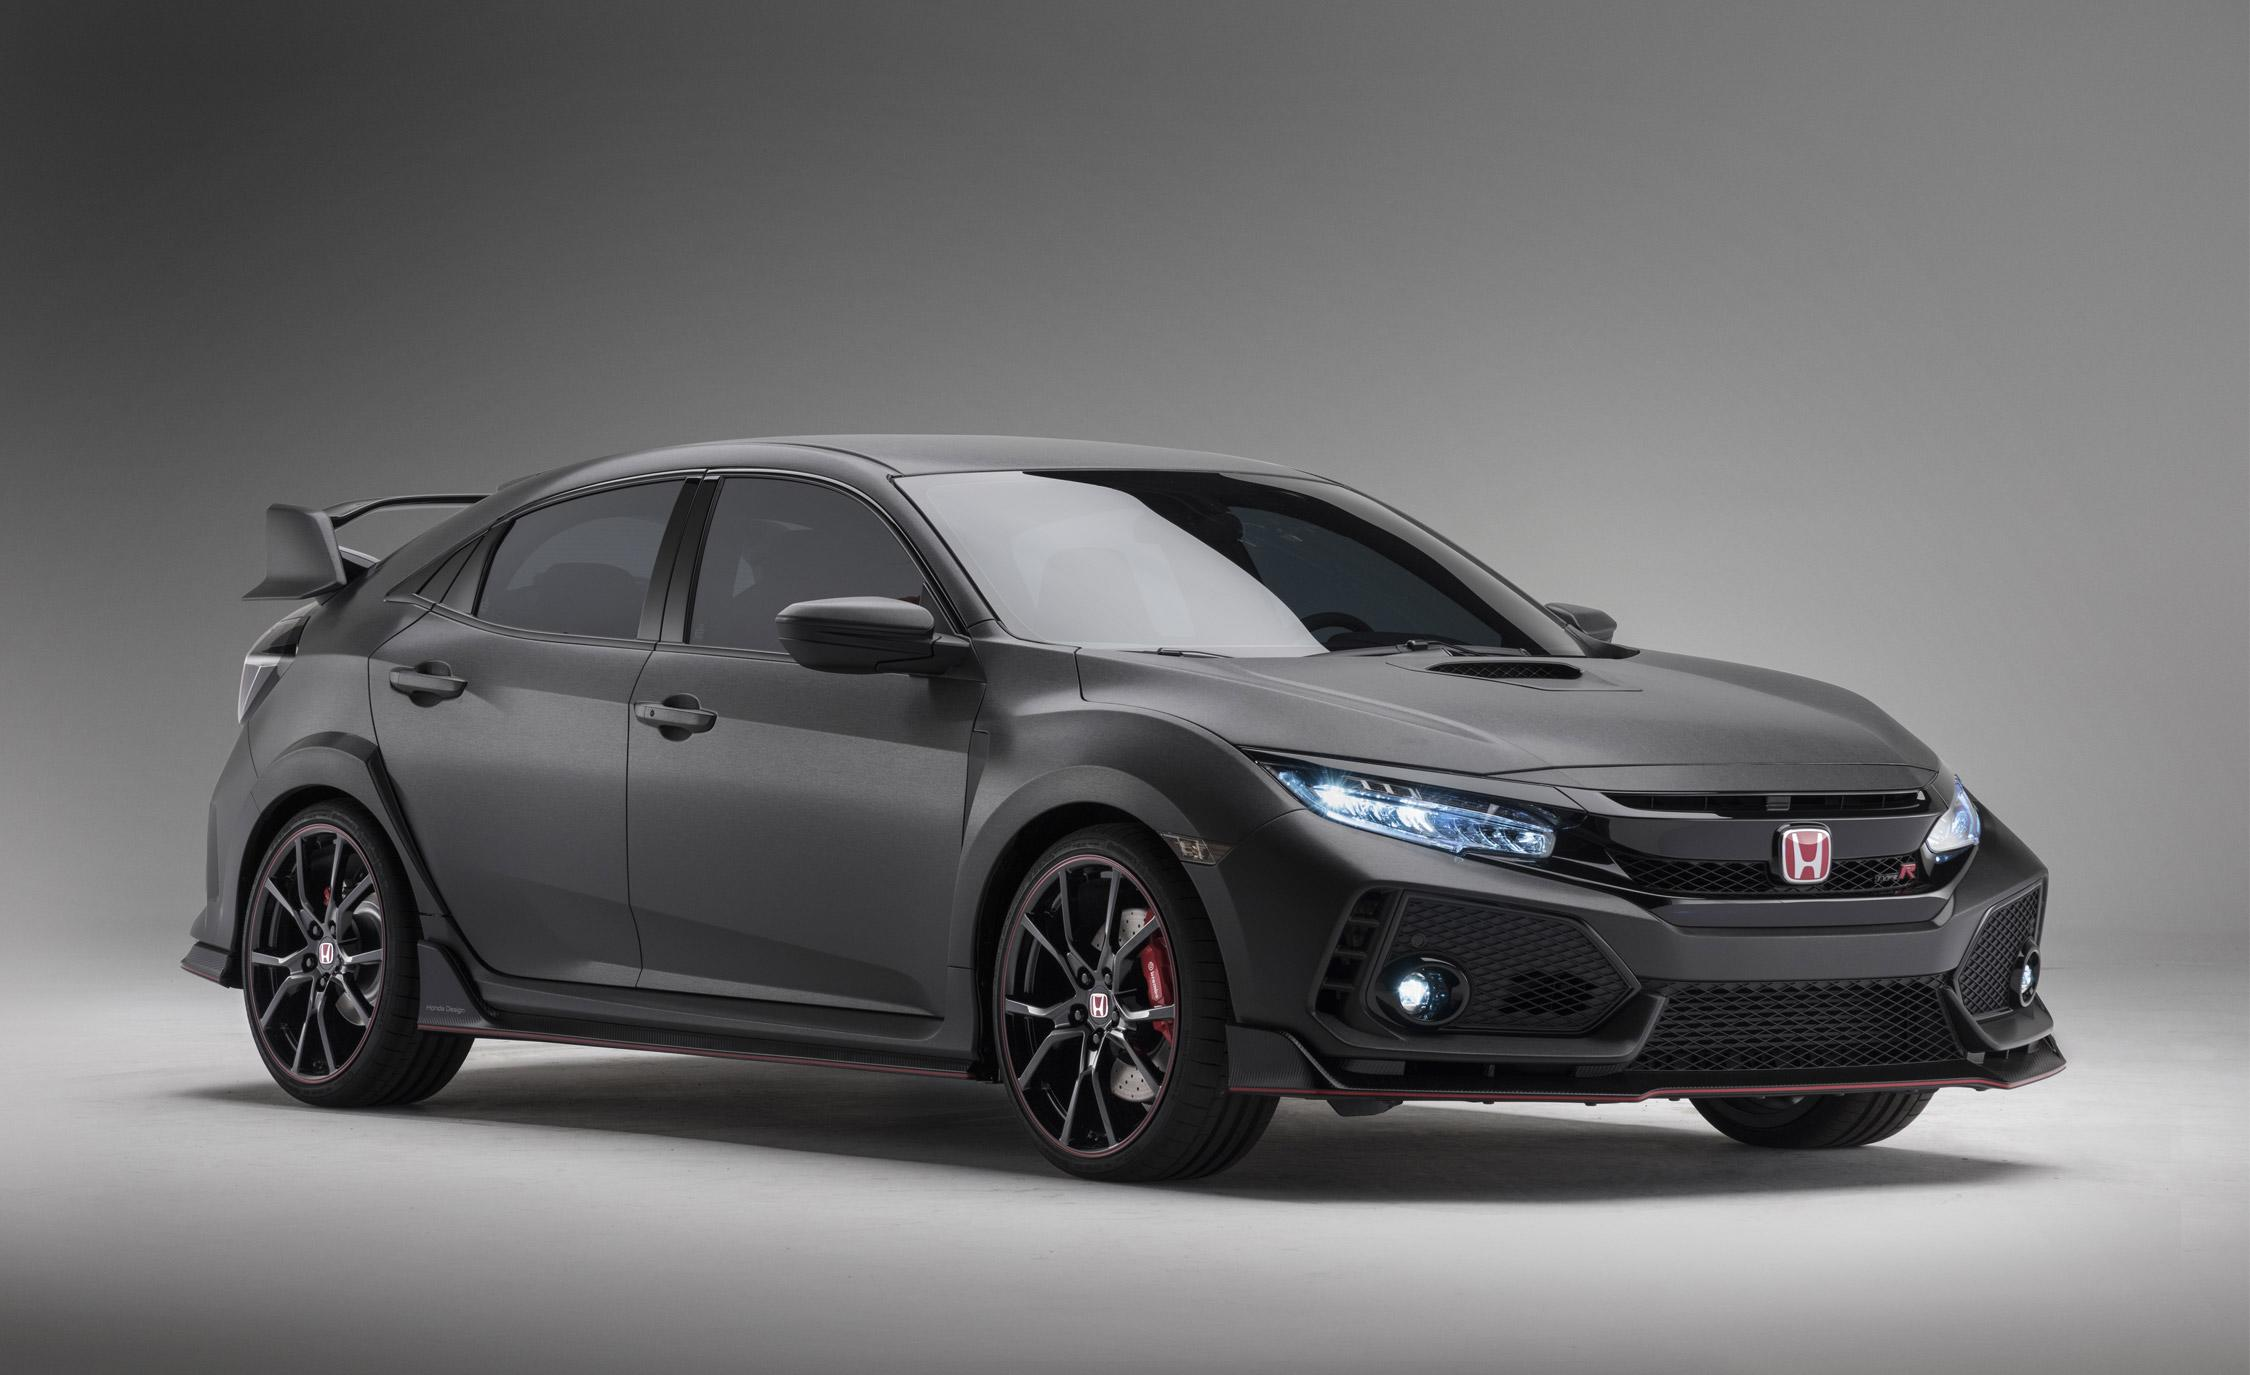 2017 honda civic type r a manual only hard core civic with 306 hp. Black Bedroom Furniture Sets. Home Design Ideas